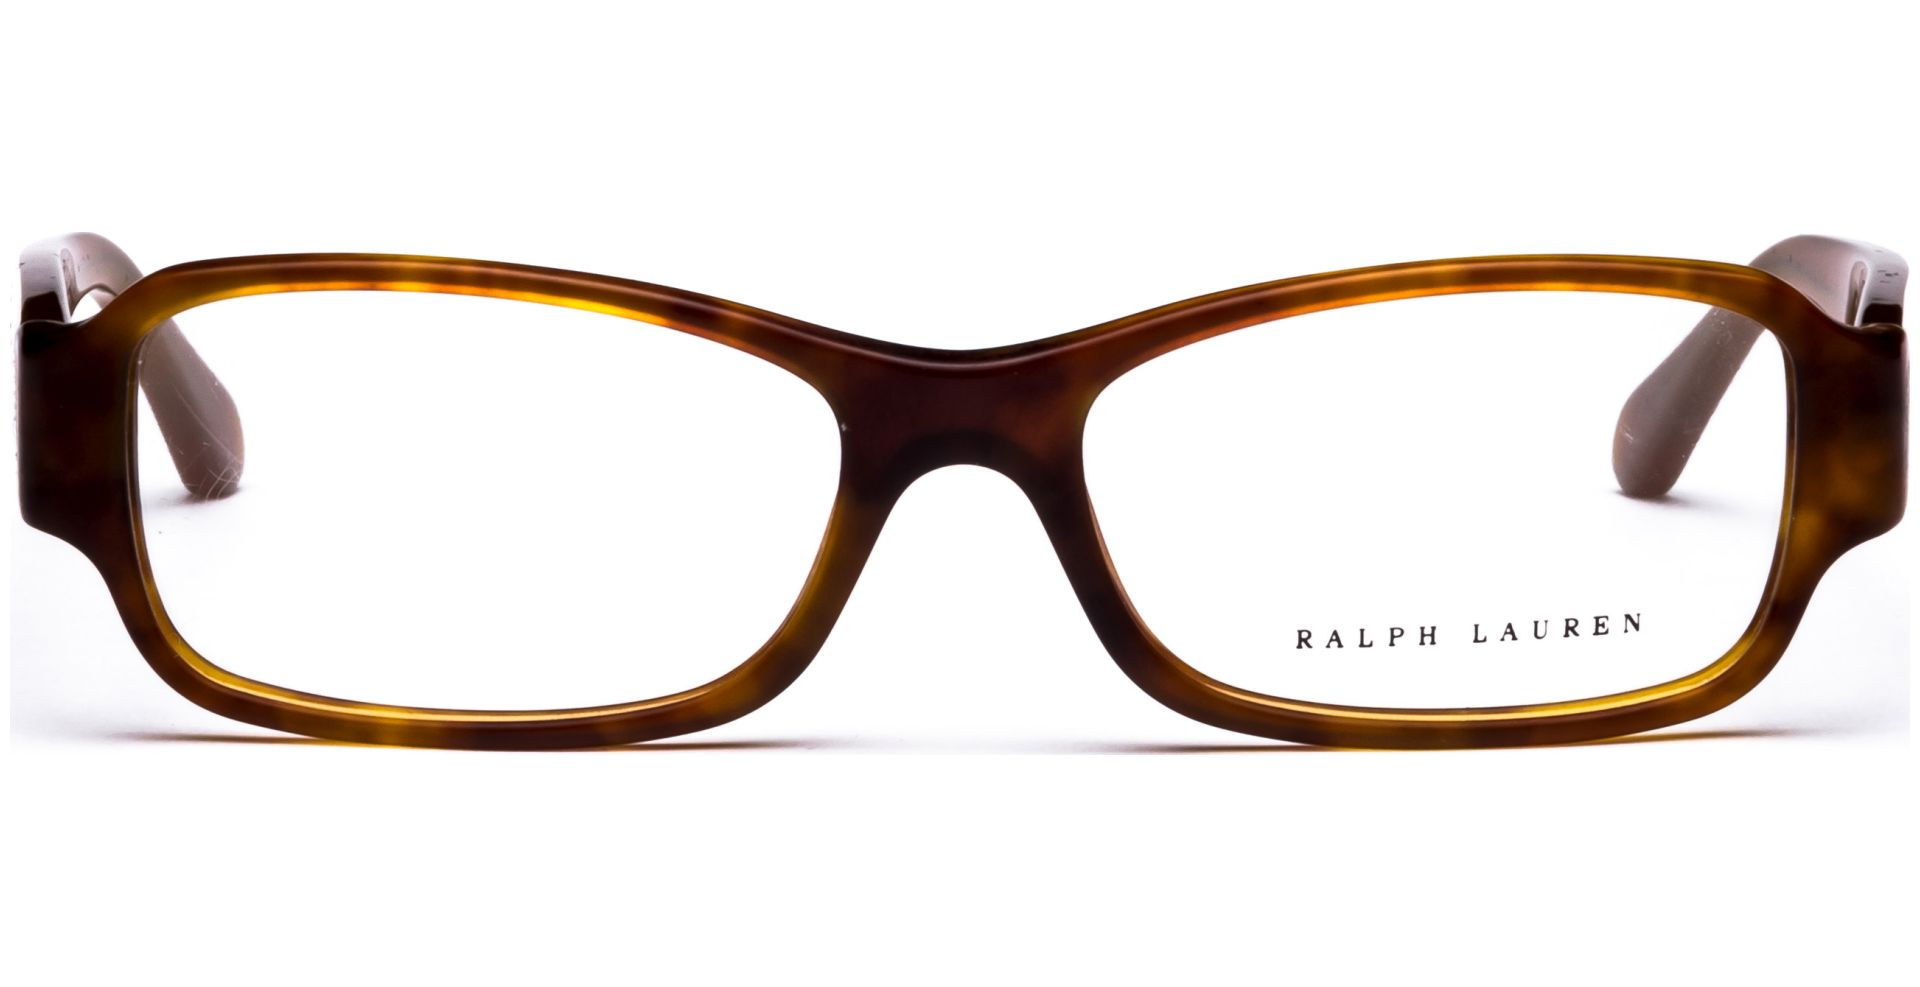 Polo Ralph Lauren Eyeglasses RL6110 5449 Rx-ABLE